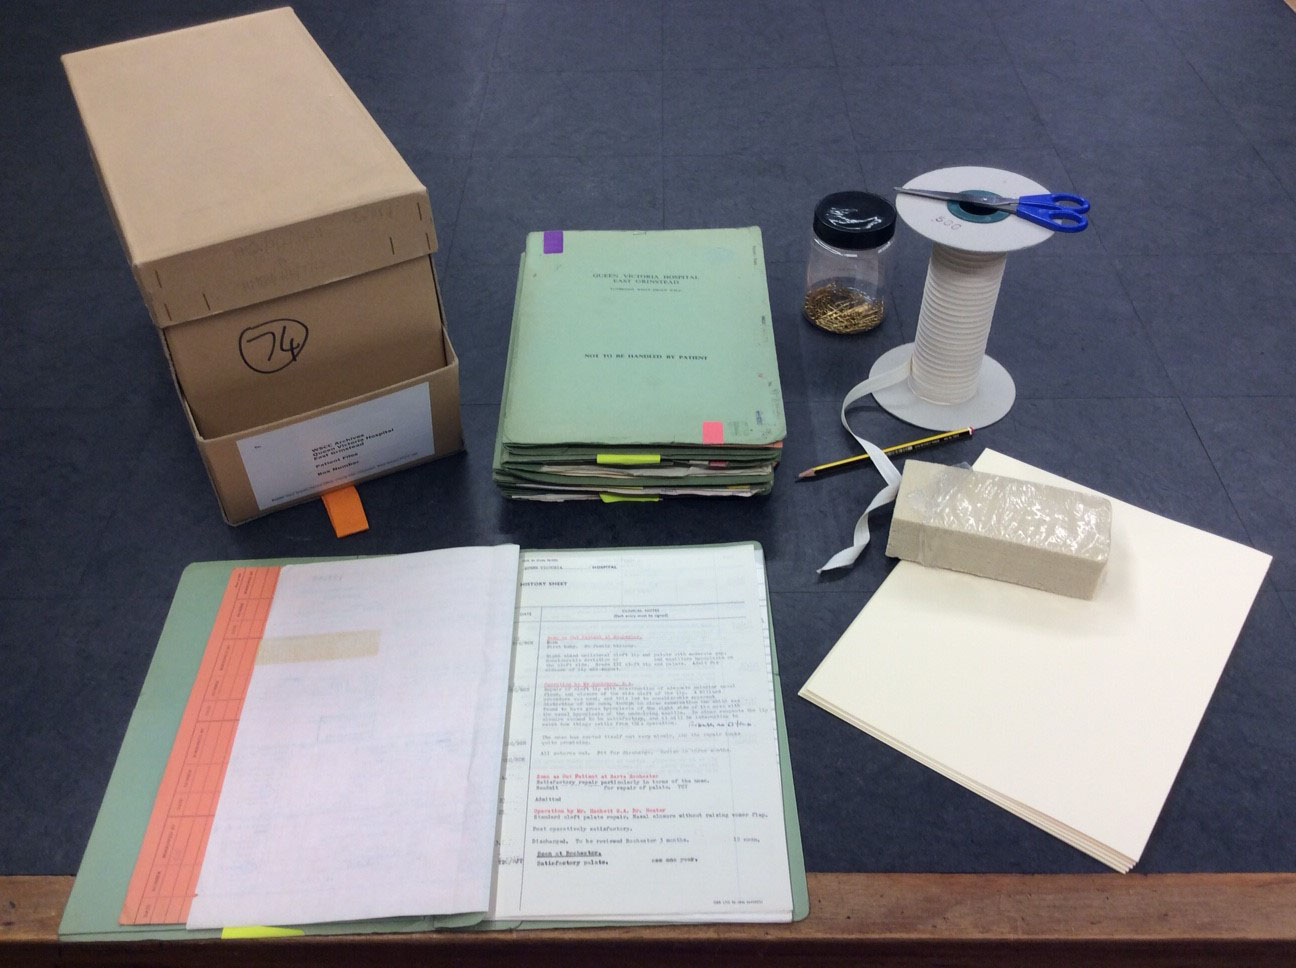 Image of the cataloguing of the collection in progress, with archival tape, scissors, a cleaning sponge, acide free card, brass paperclips and an archival box